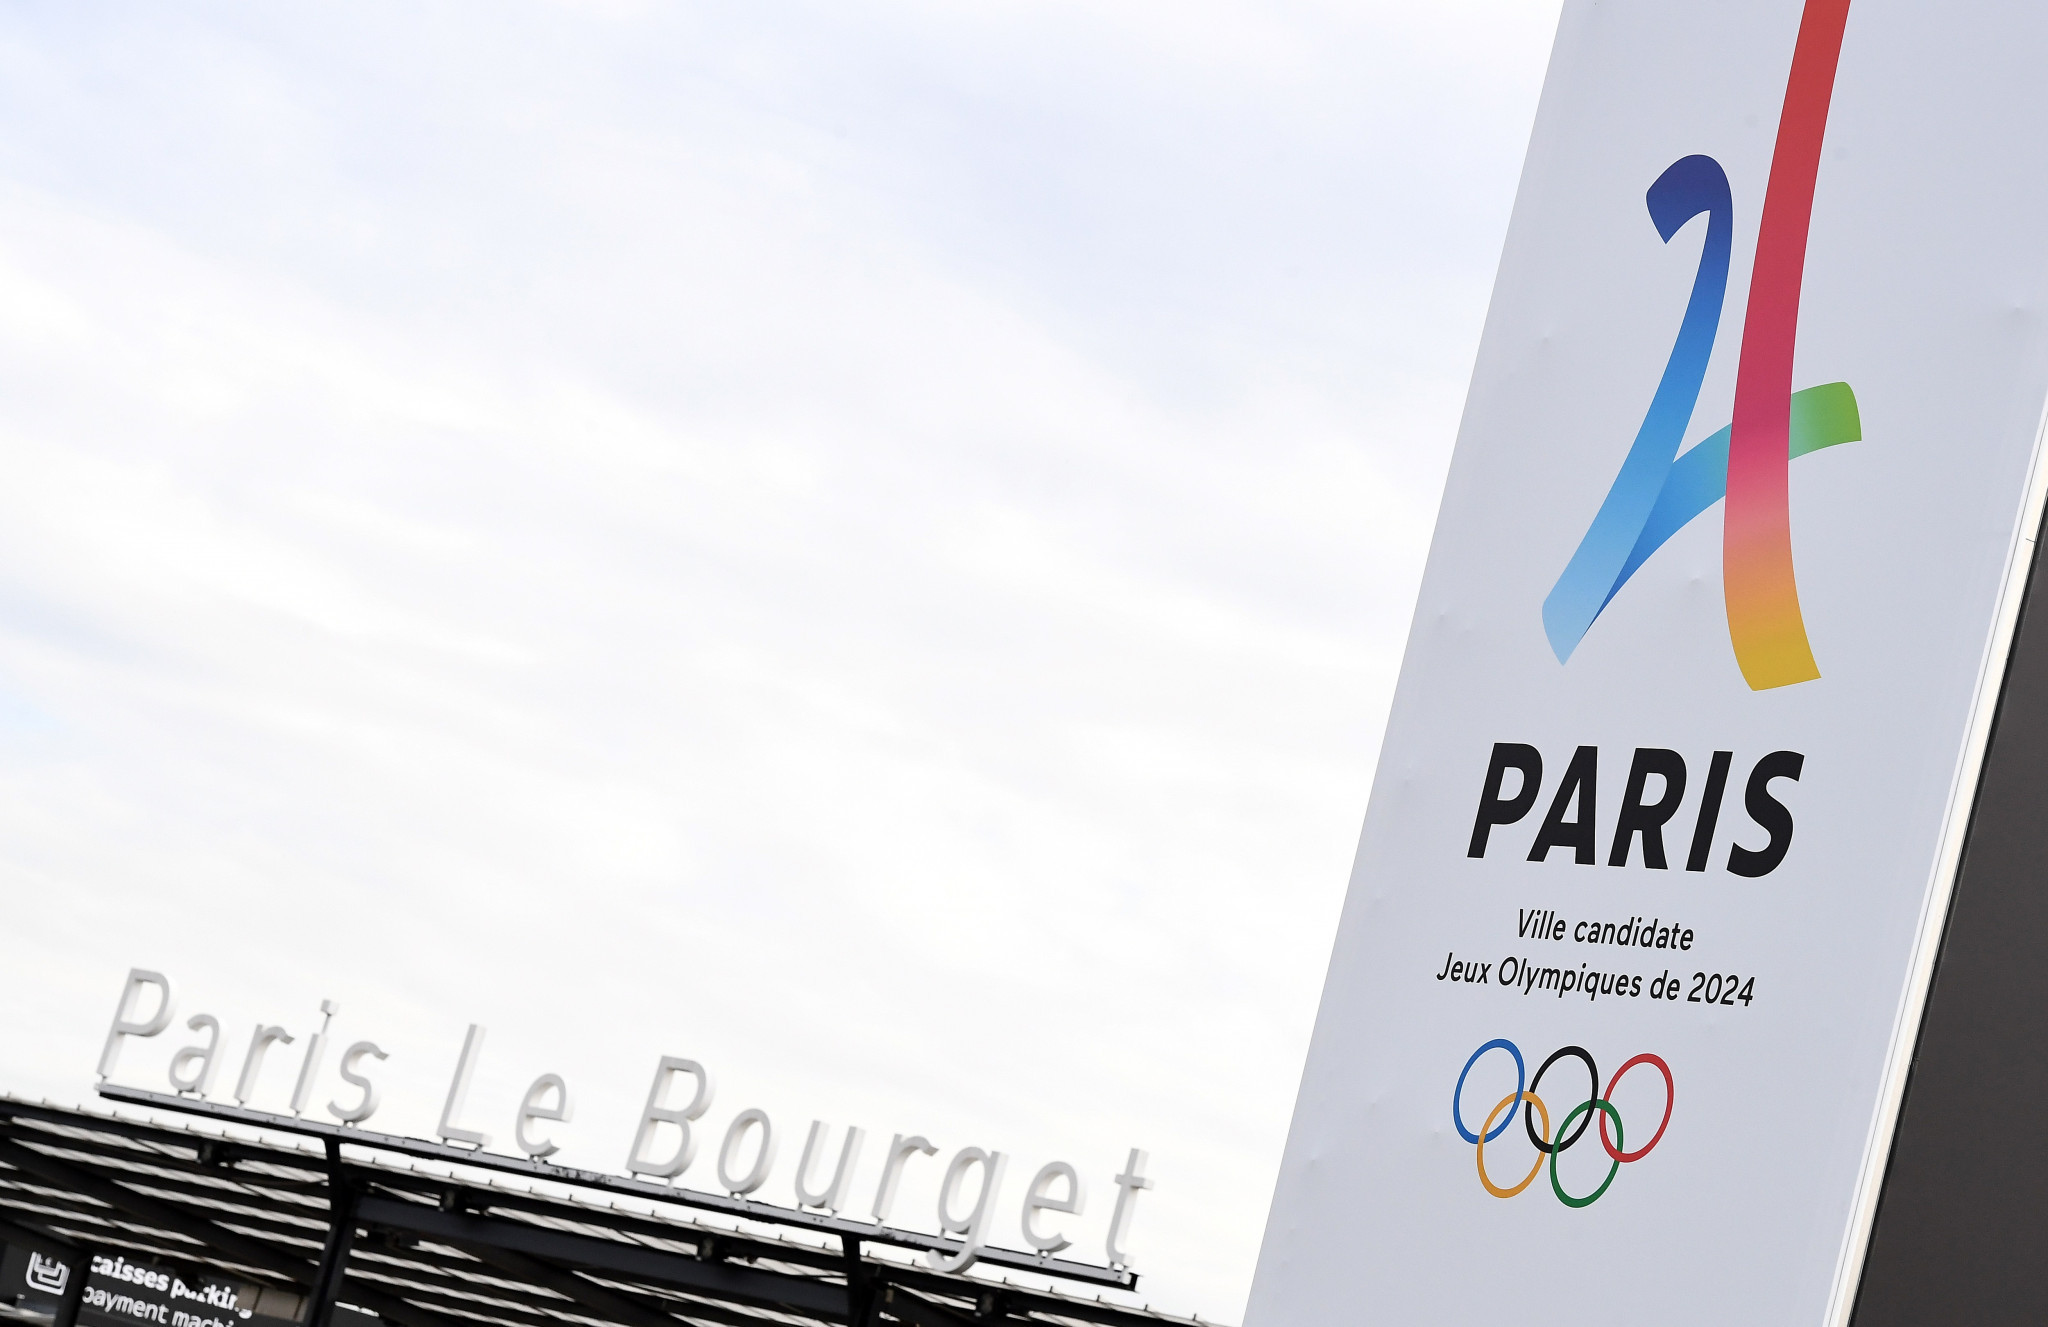 Paris 2024 dismiss call from City Councillor for referendum on whether to cancel Olympic Games